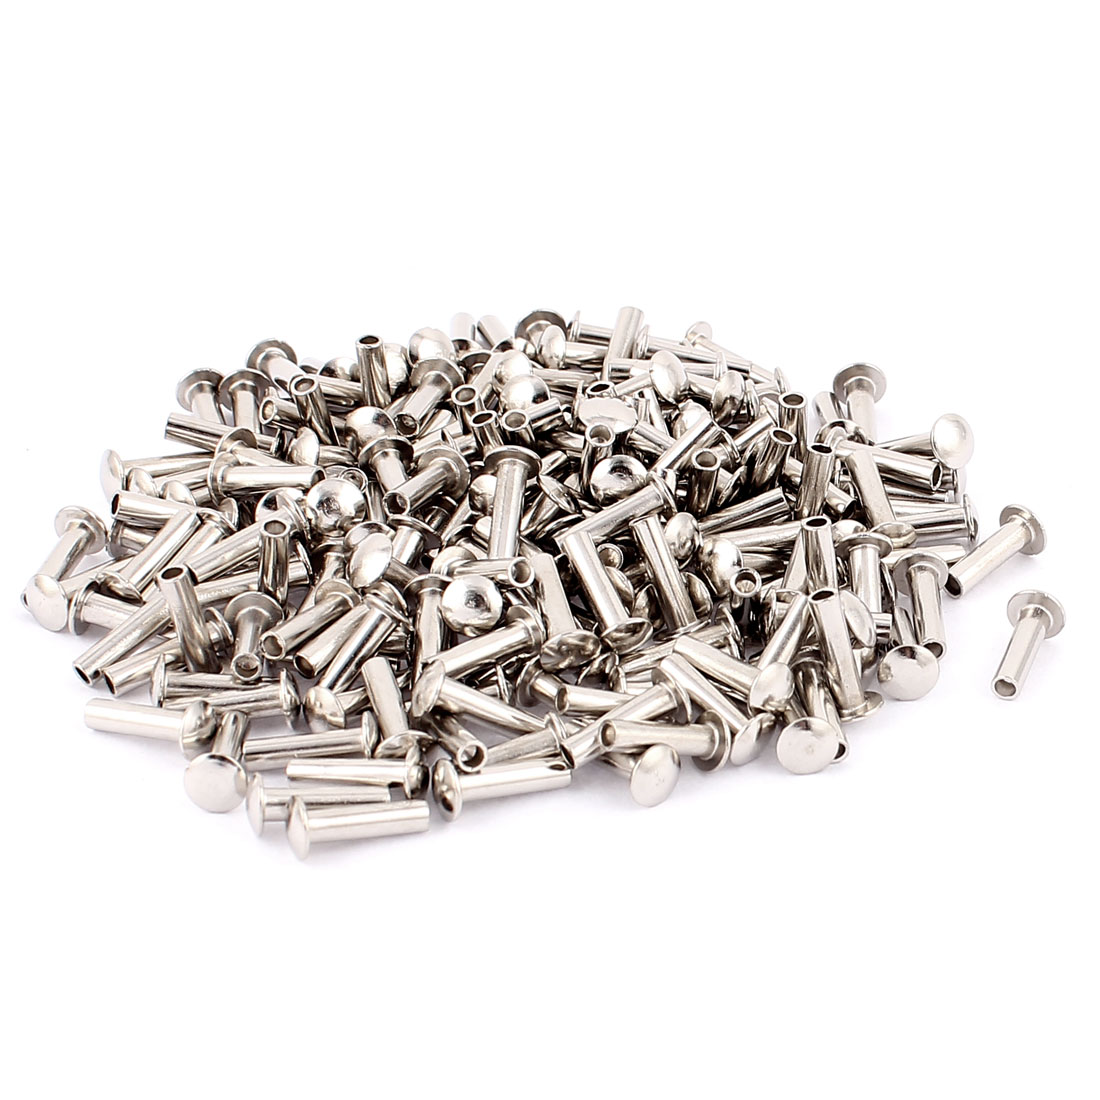 Unique Bargains 200 Pcs M3 x 11mm Nickel Plated Truss Head Semi-Tubular Rivets